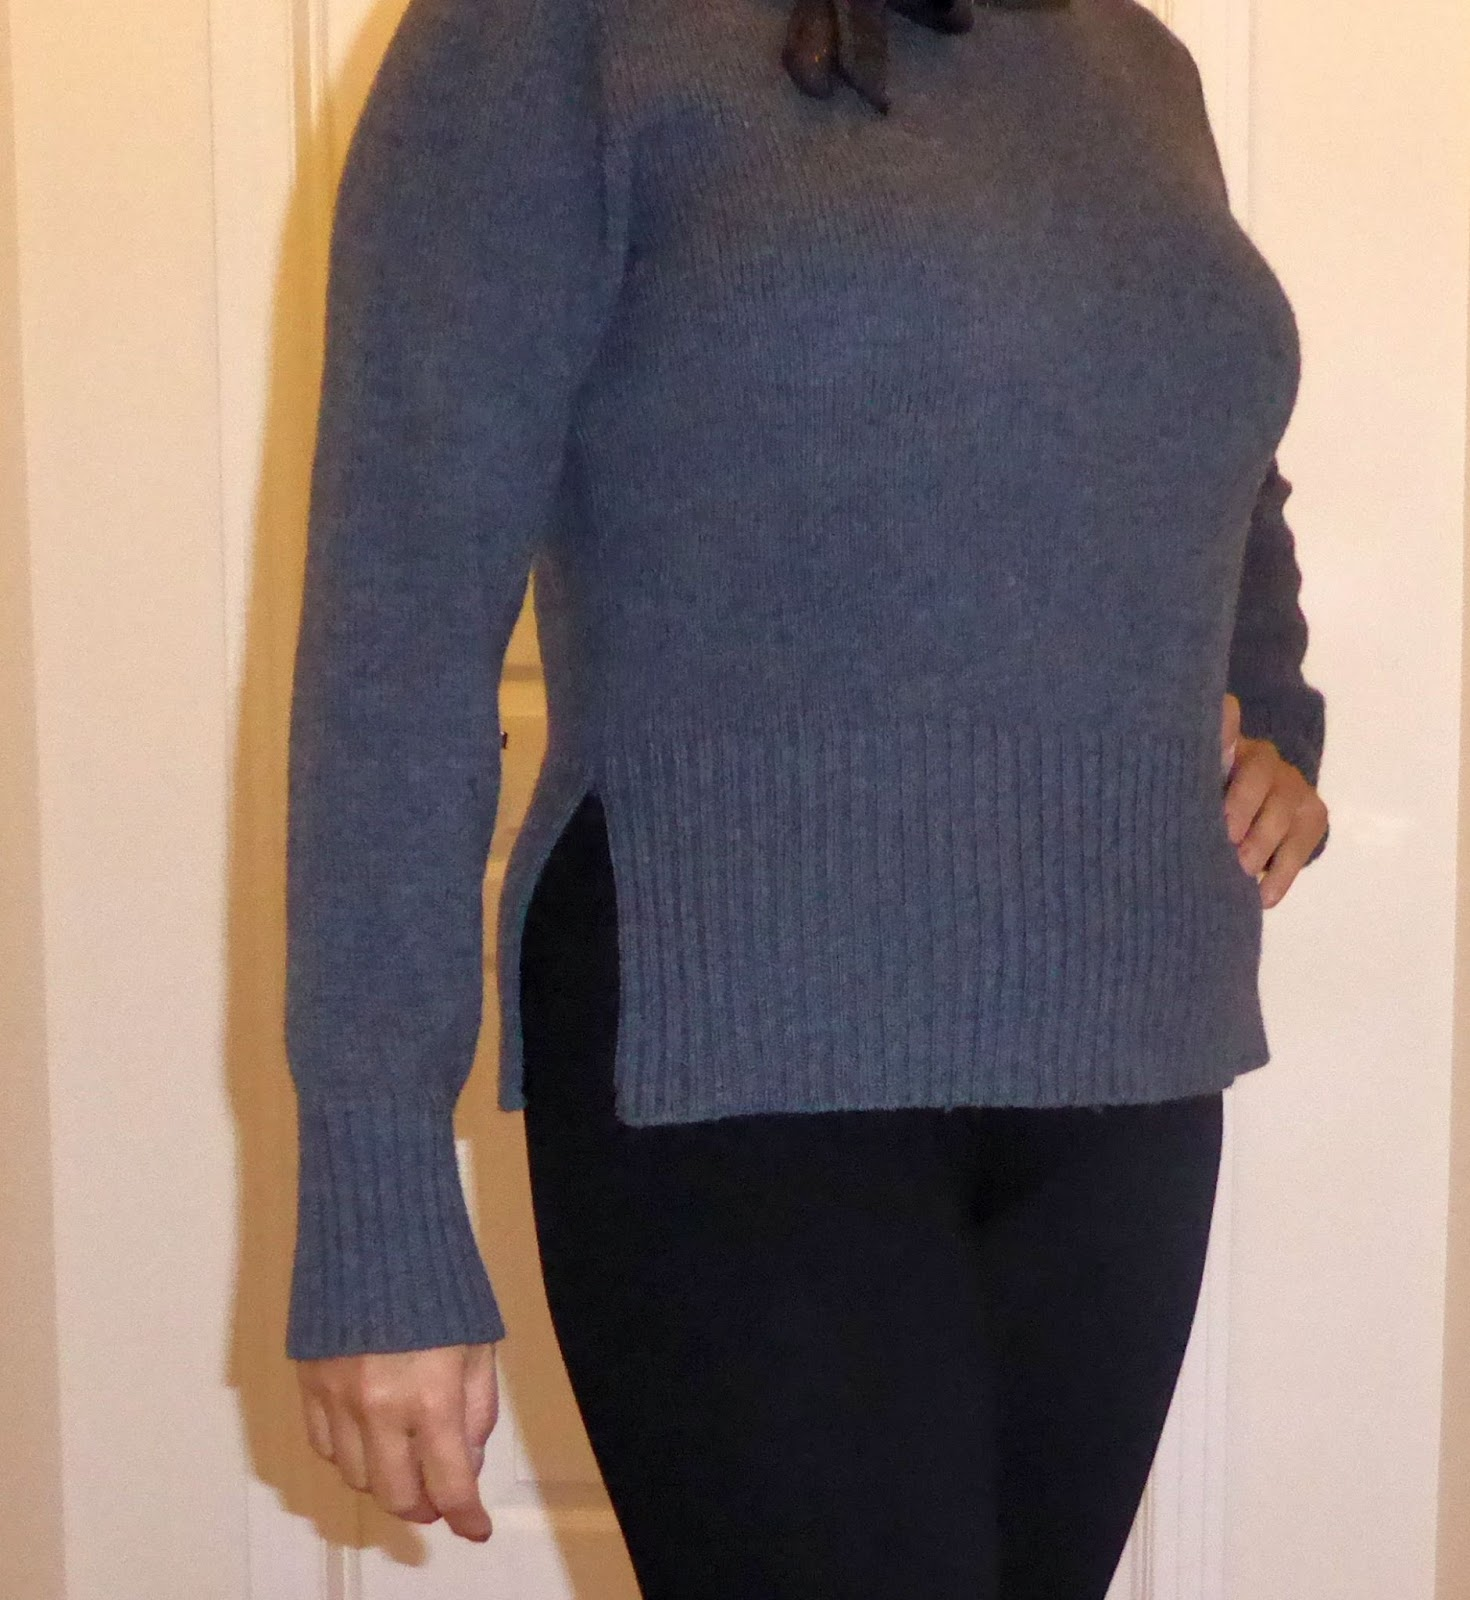 Refashion Co-op: Adding side slits to too tight sweaters